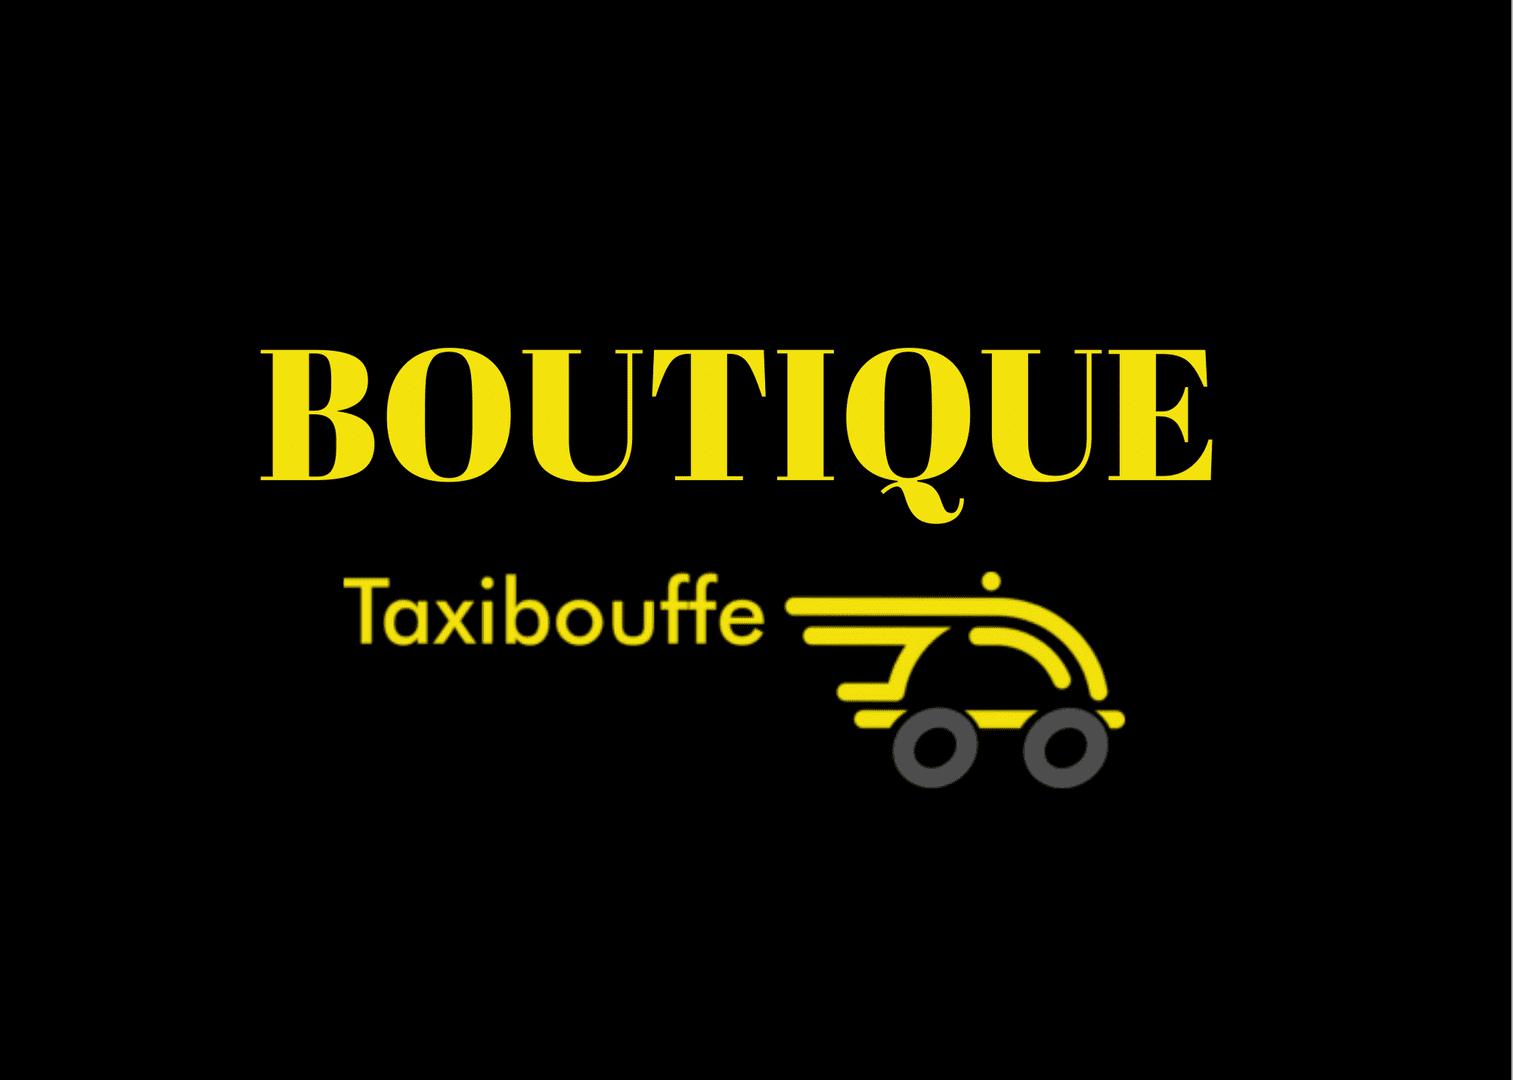 Boutique Taxibouffe image